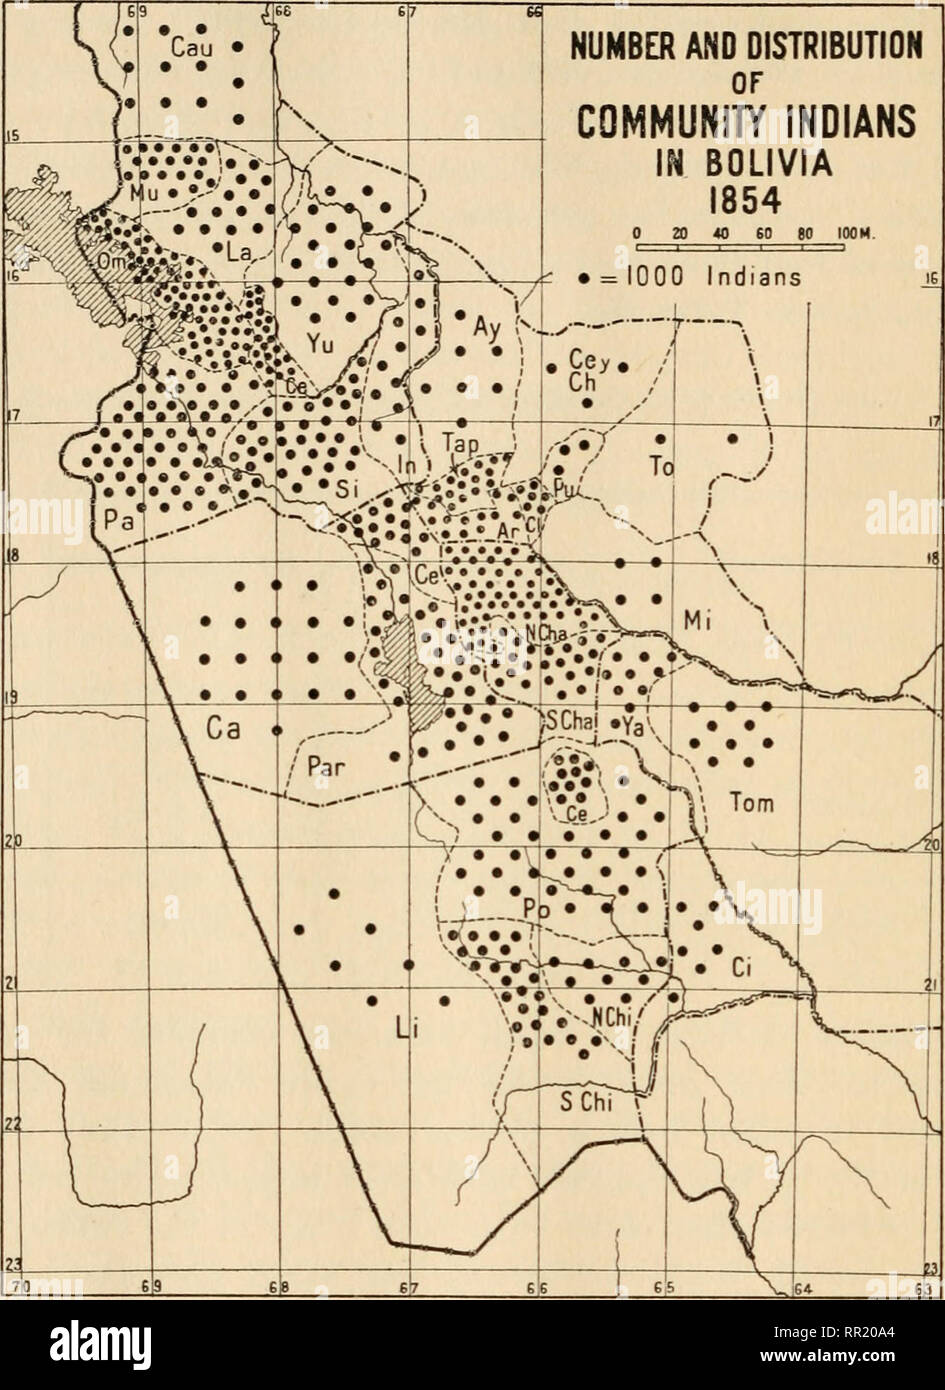 The agrarian Indian communities of highland Bolivia. Indians ... on map of saint lucia highlands, peru highlands, map of guiana highlands, map of latin america and its landforms, map of argentina with lakes labeled, map of red sea highlands, map of scotland highlands,